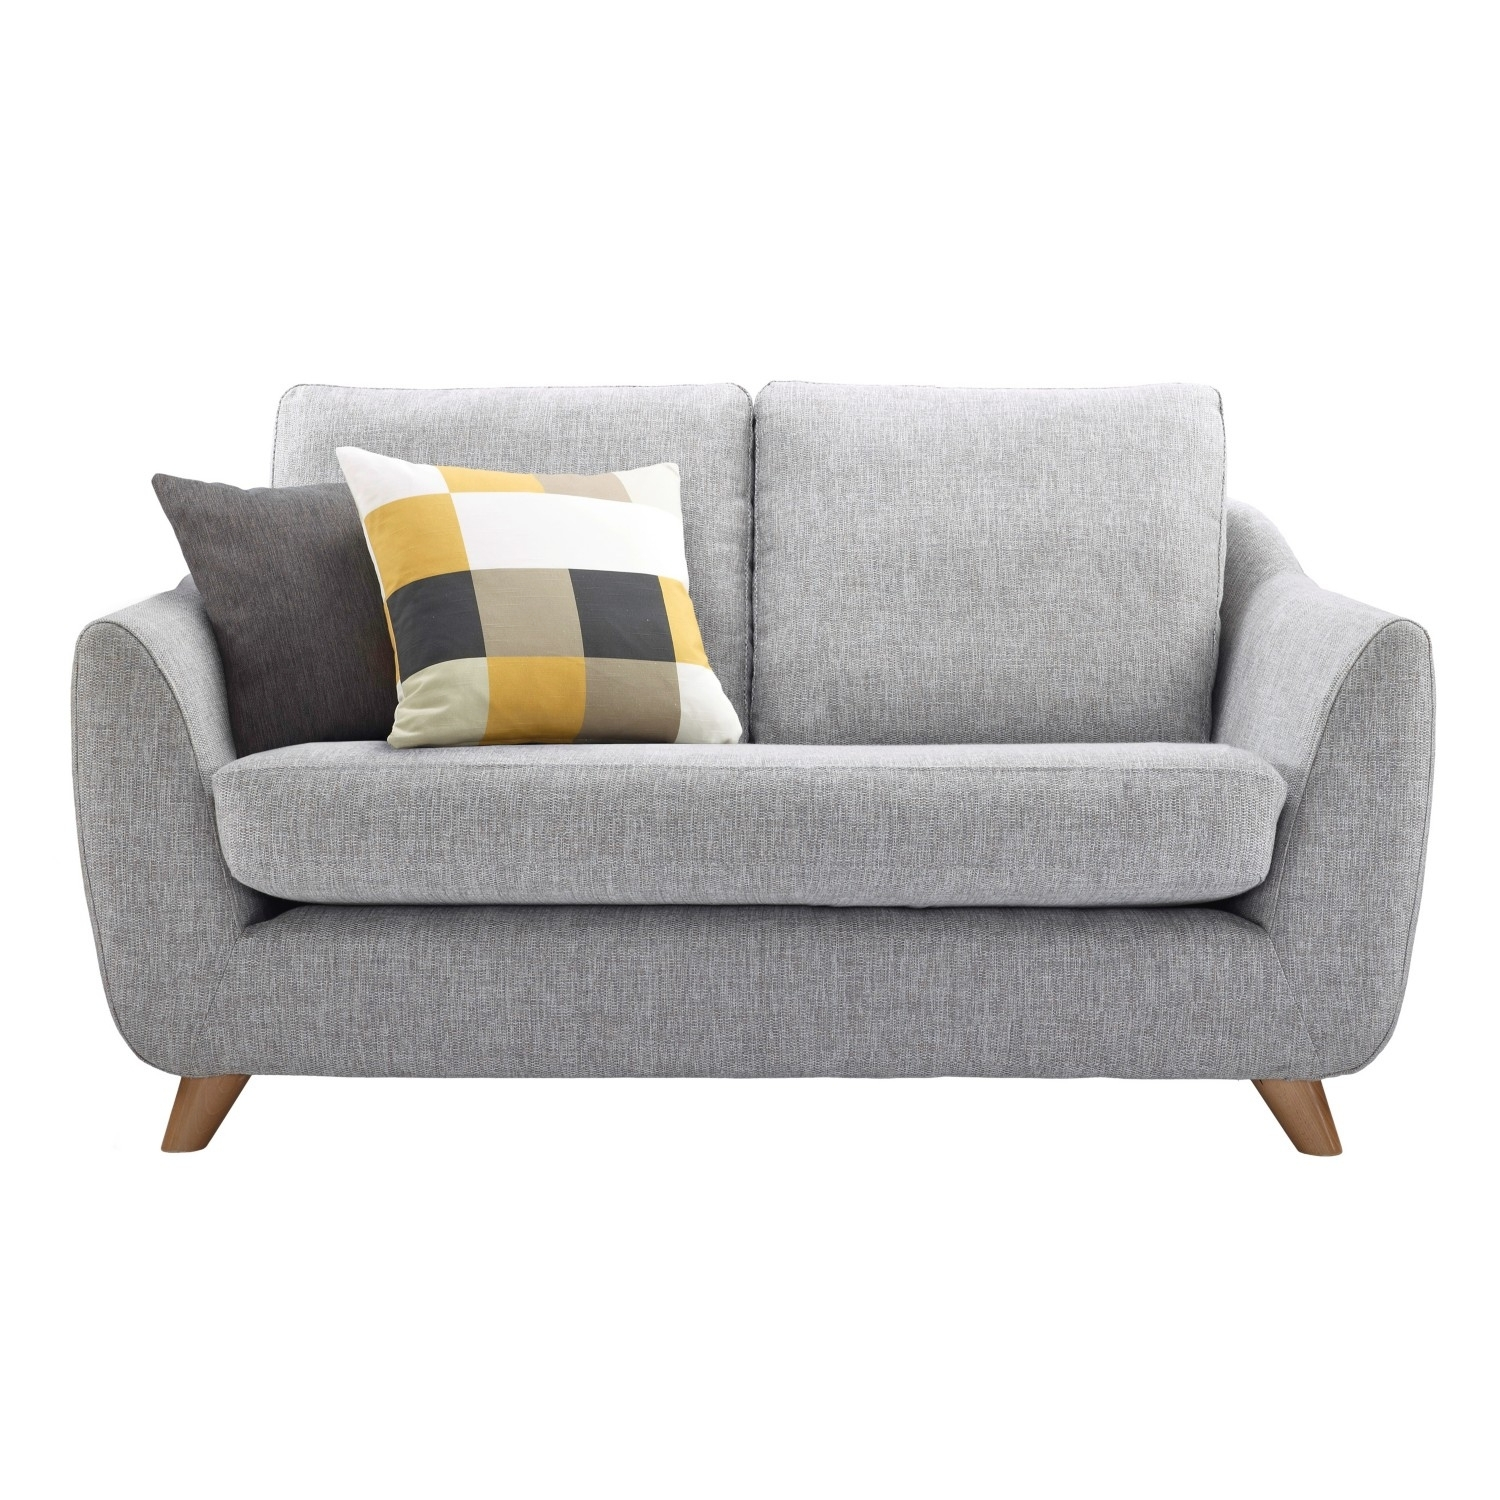 Best Mini Sofa About Mini Sofa For Bedroom Sofas | Aifaresidency Intended For Mini Sofas (View 2 of 10)